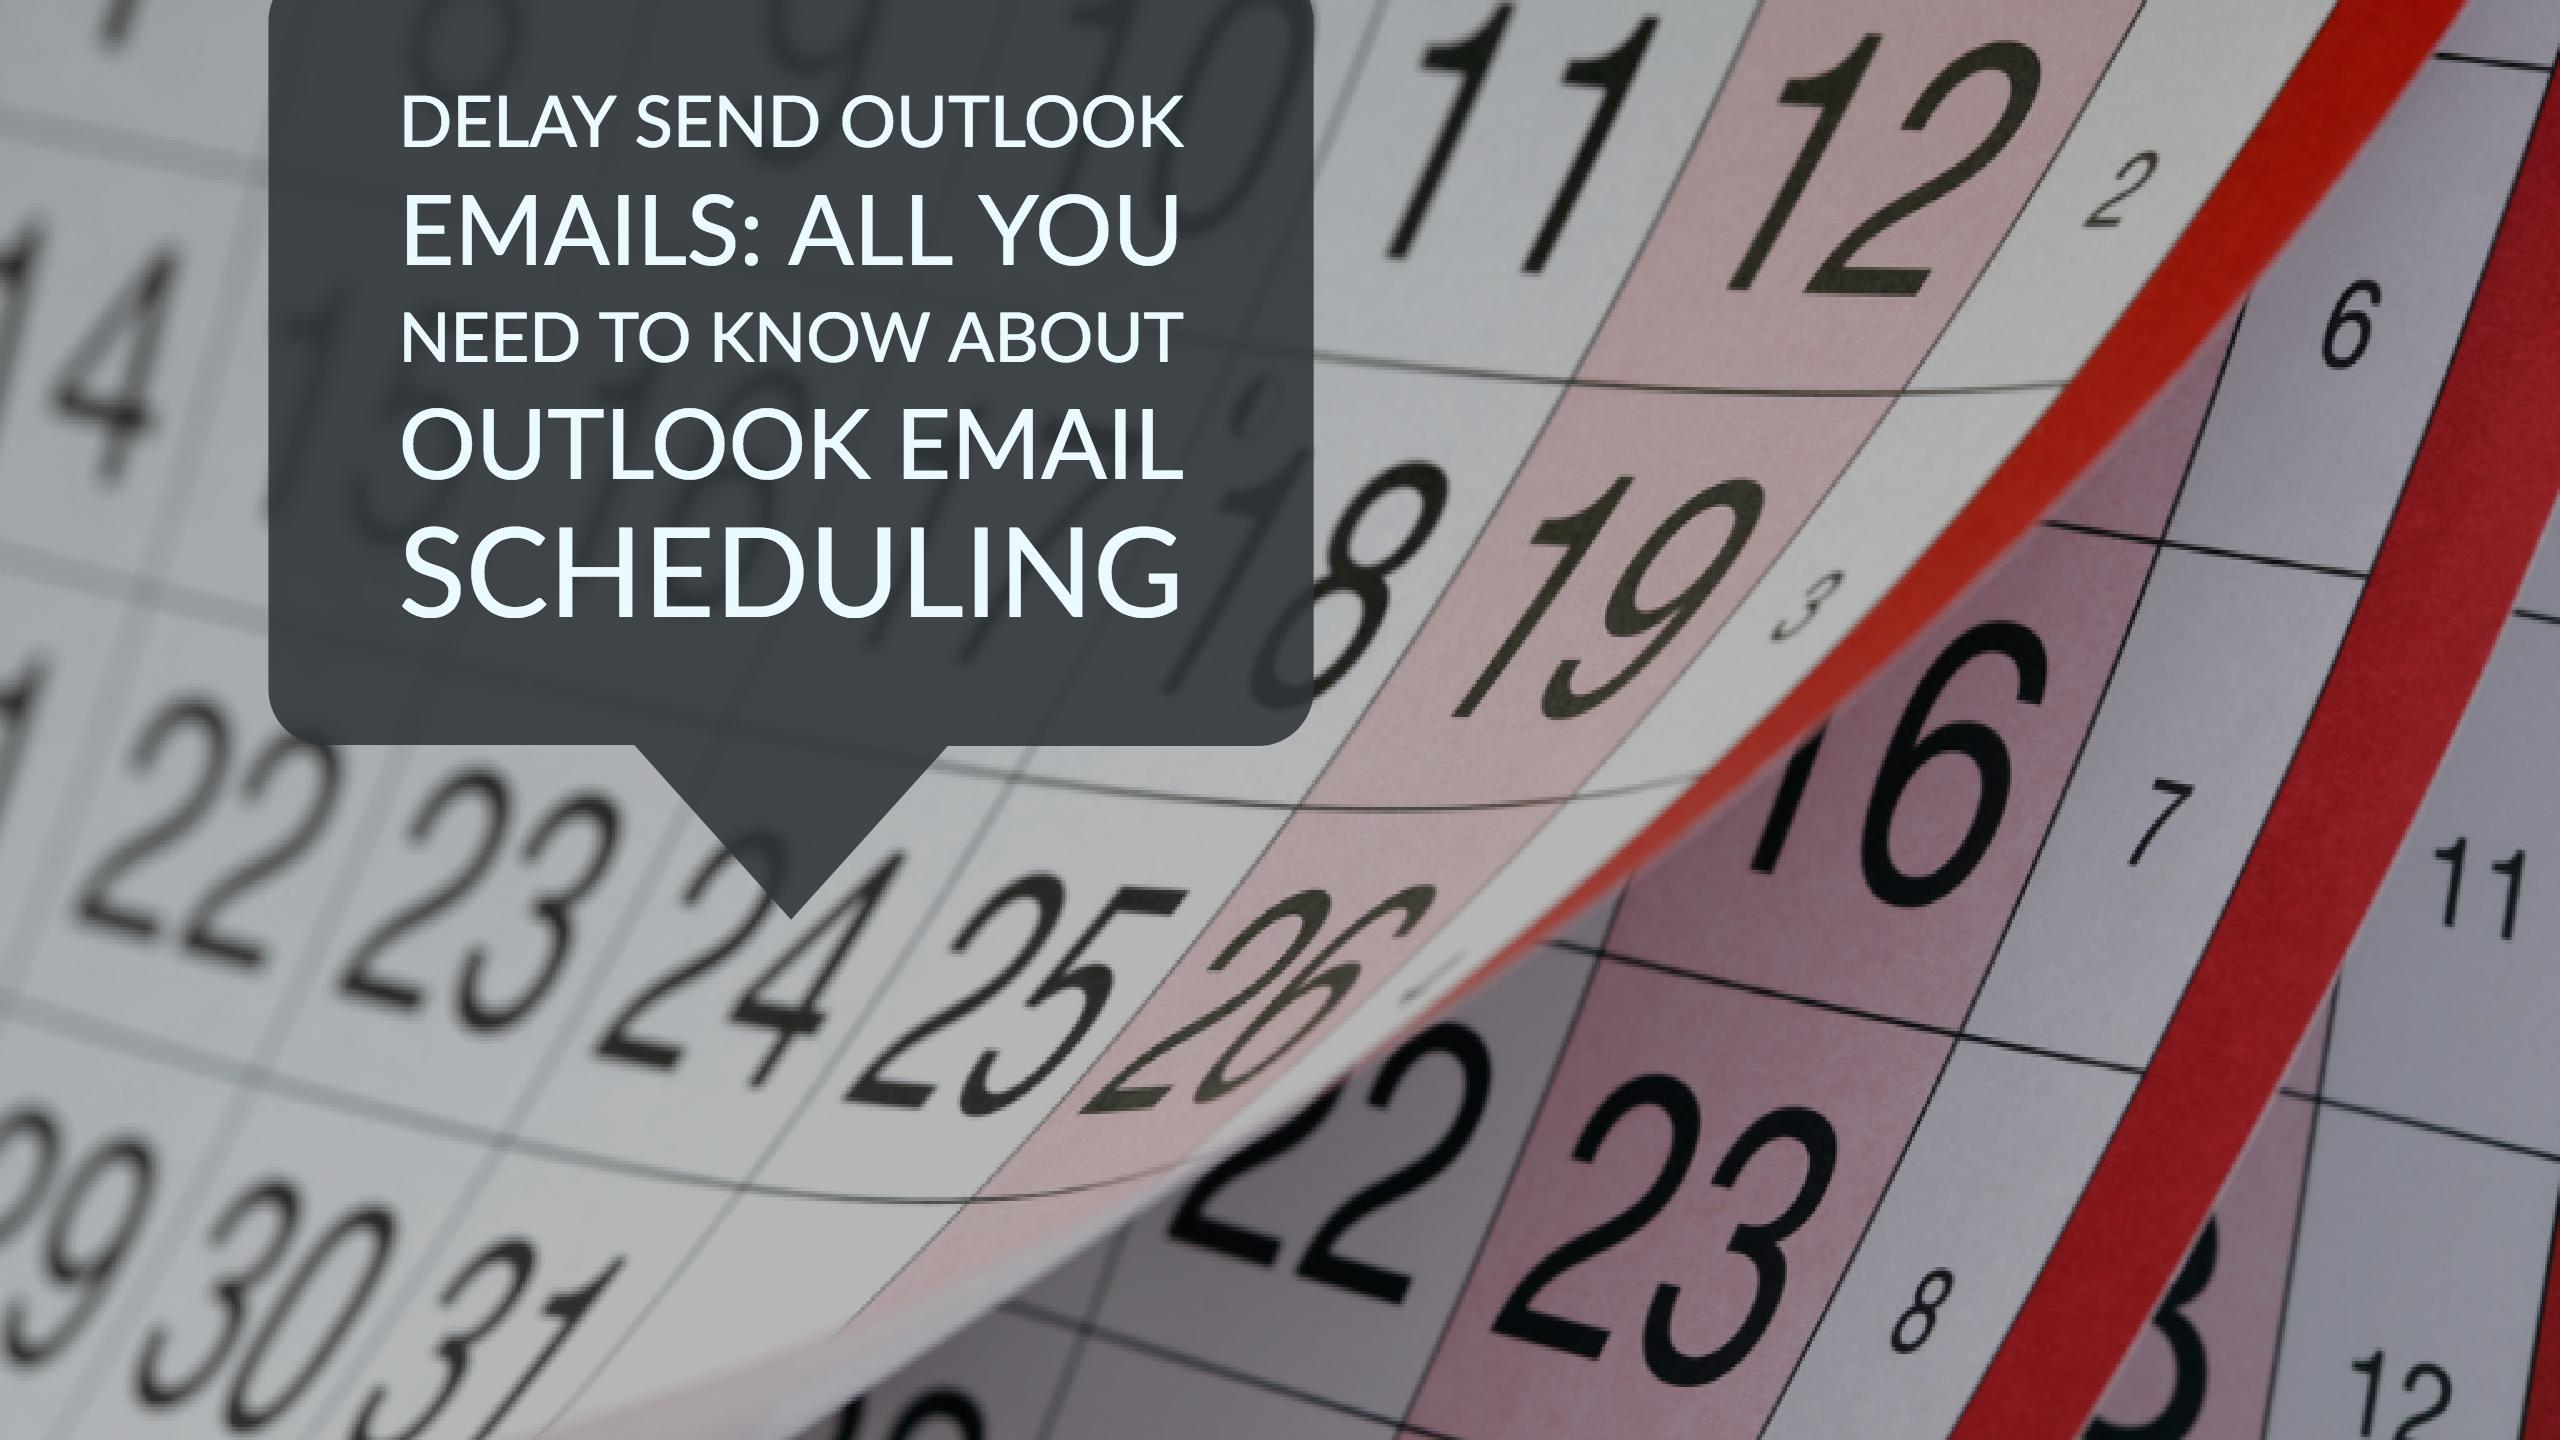 Delay Send Outlook Emails: All you need to know about Outlook Email ...